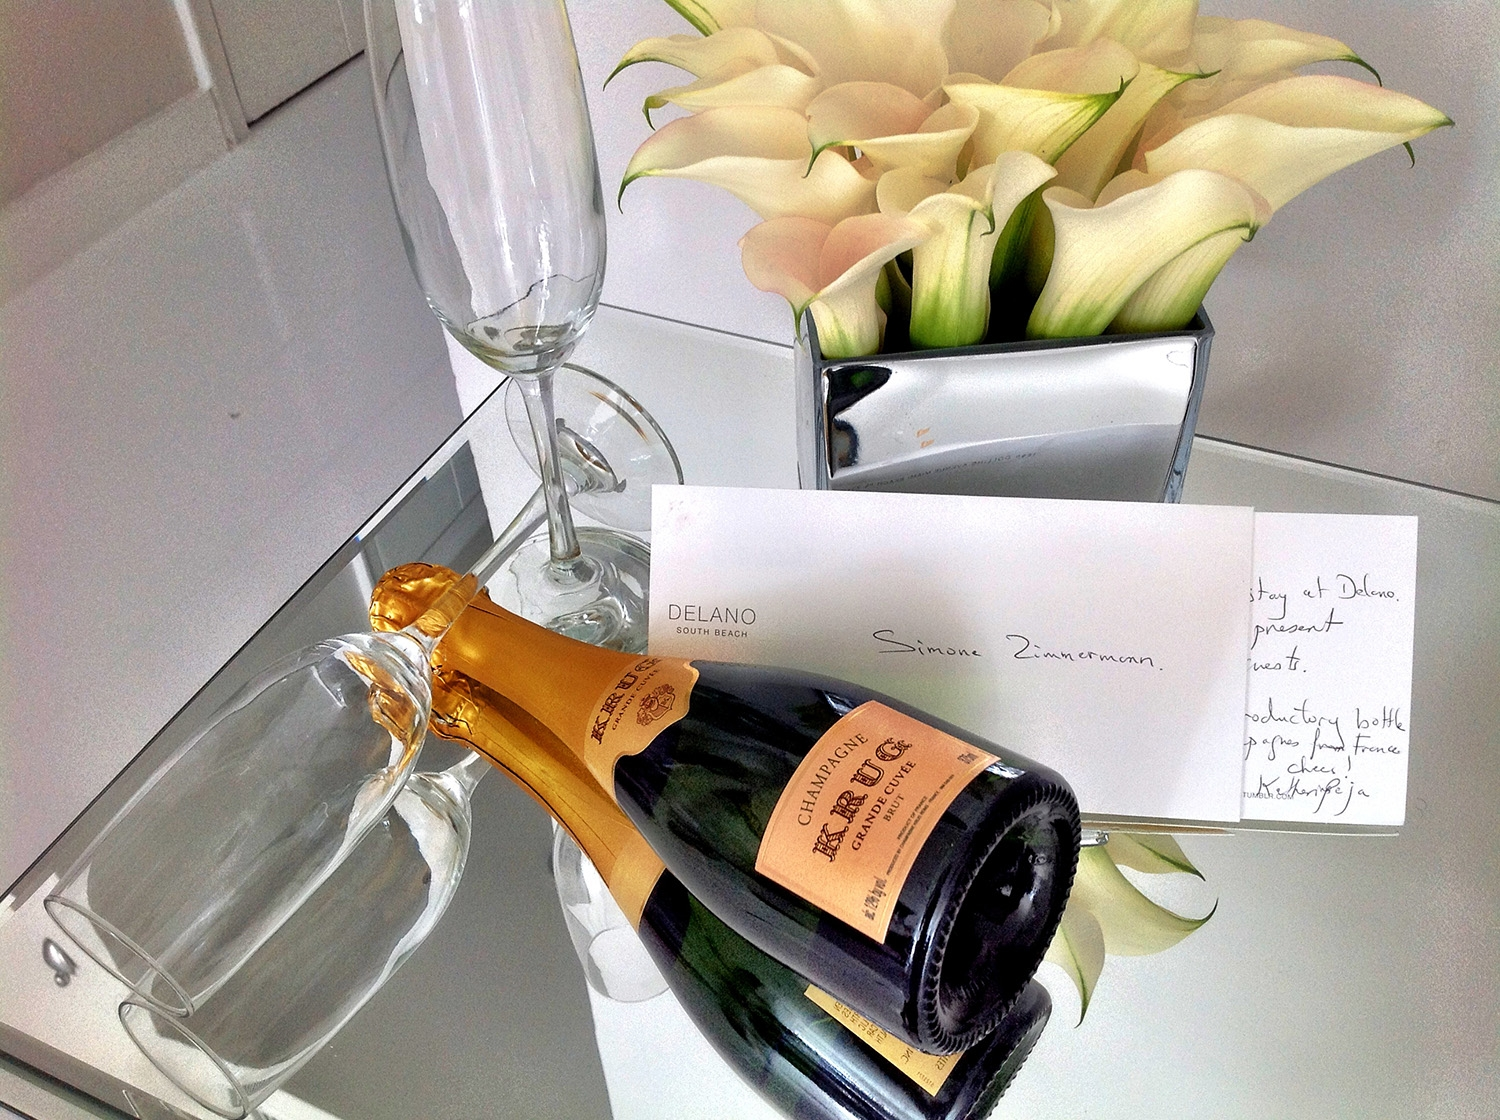 A bottle of champagne accompanied by flutes and flowers sits on a small table as a welcome gift